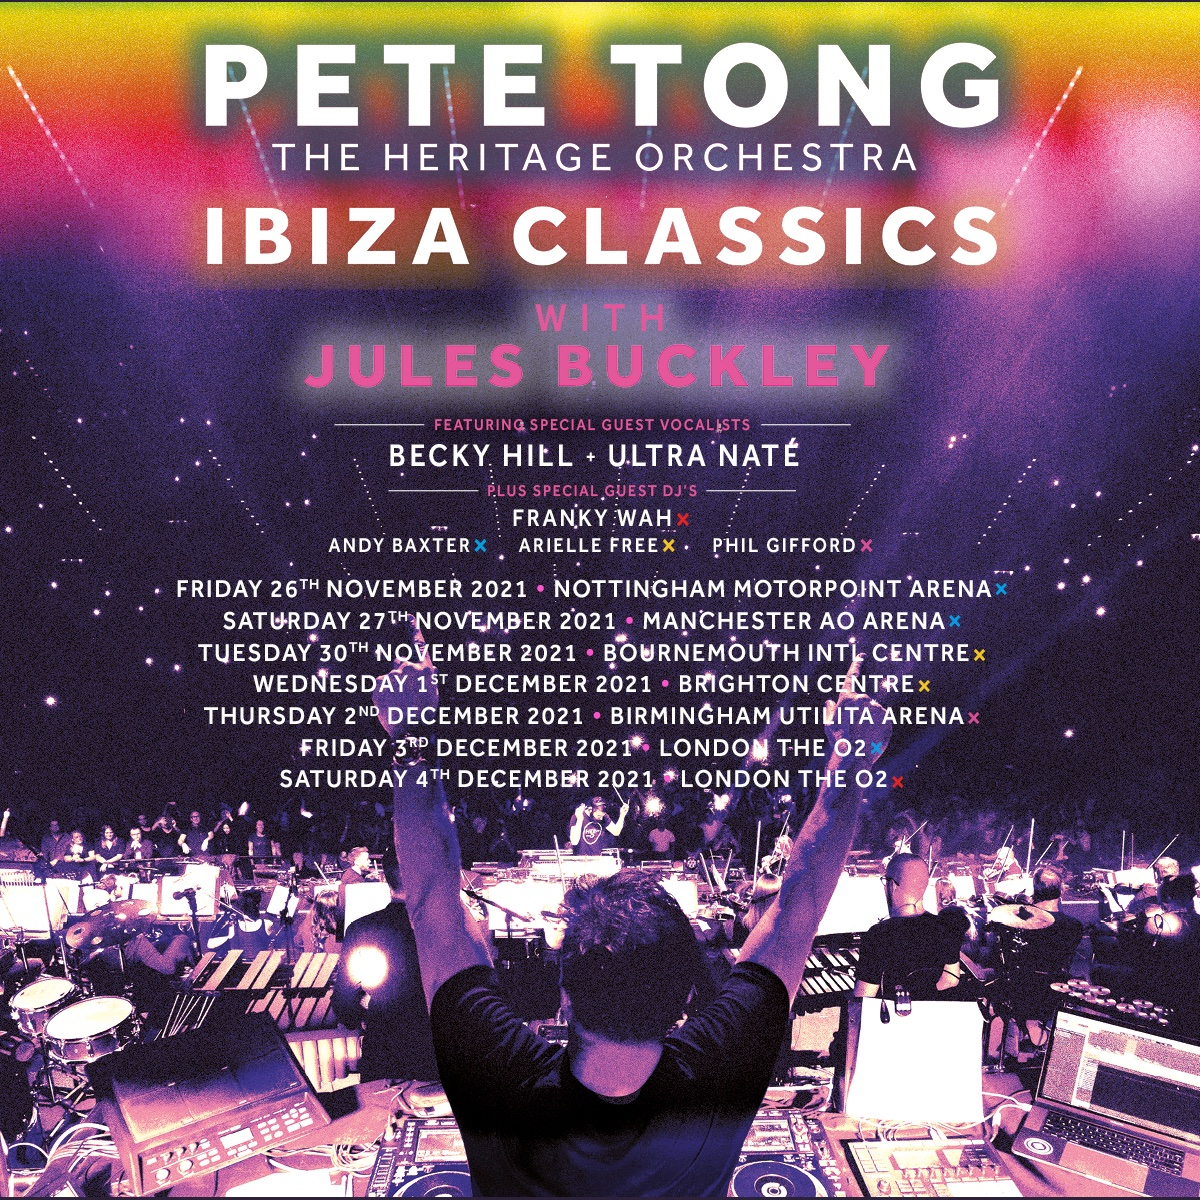 See you in a couple of months for our return to celebrating this music we love, in the best way we know how! Tickets: gigst.rs/PT @IbizaClassics_ @julesbuckley @HeritageOrc @Vulavox